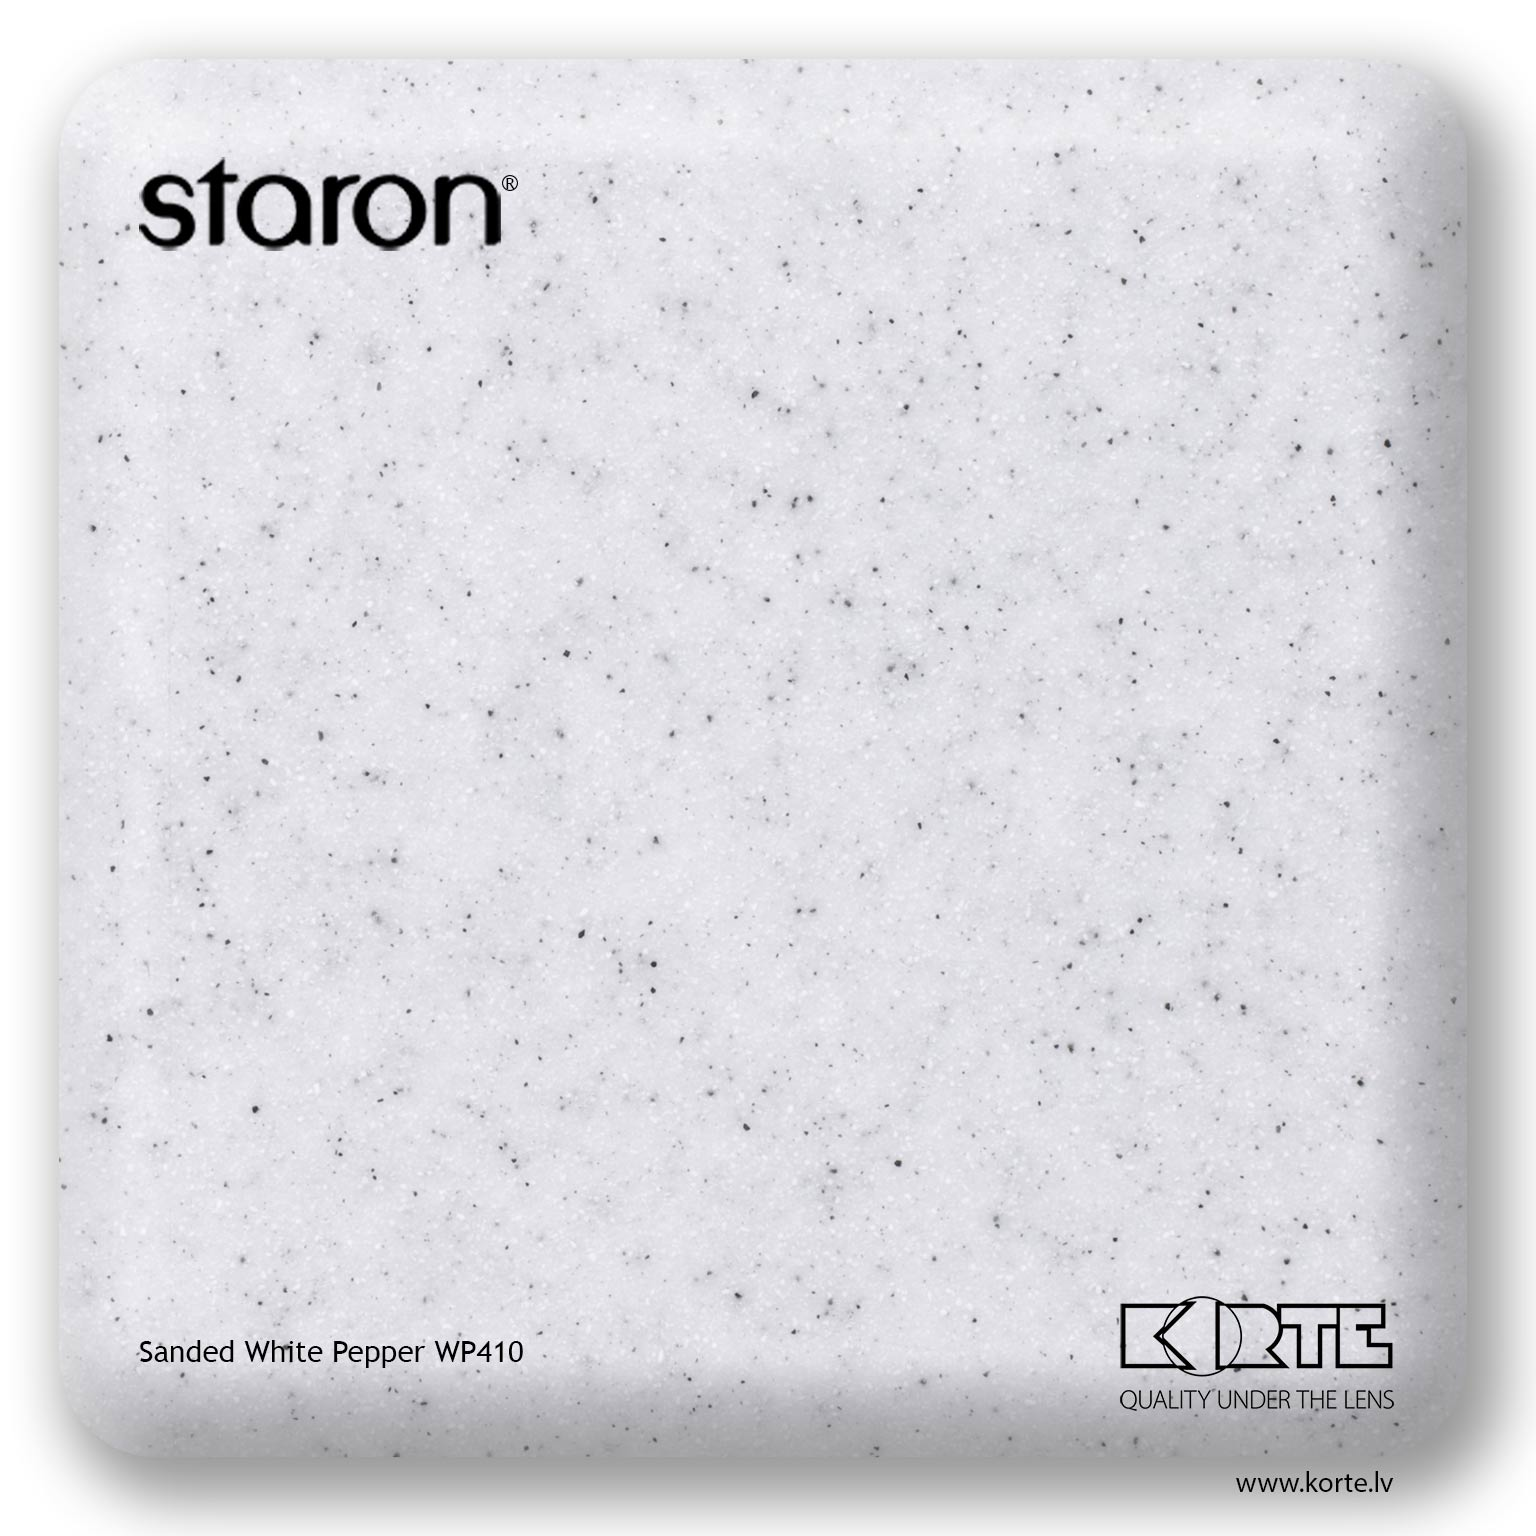 Staron Sanded White Pepper WP410